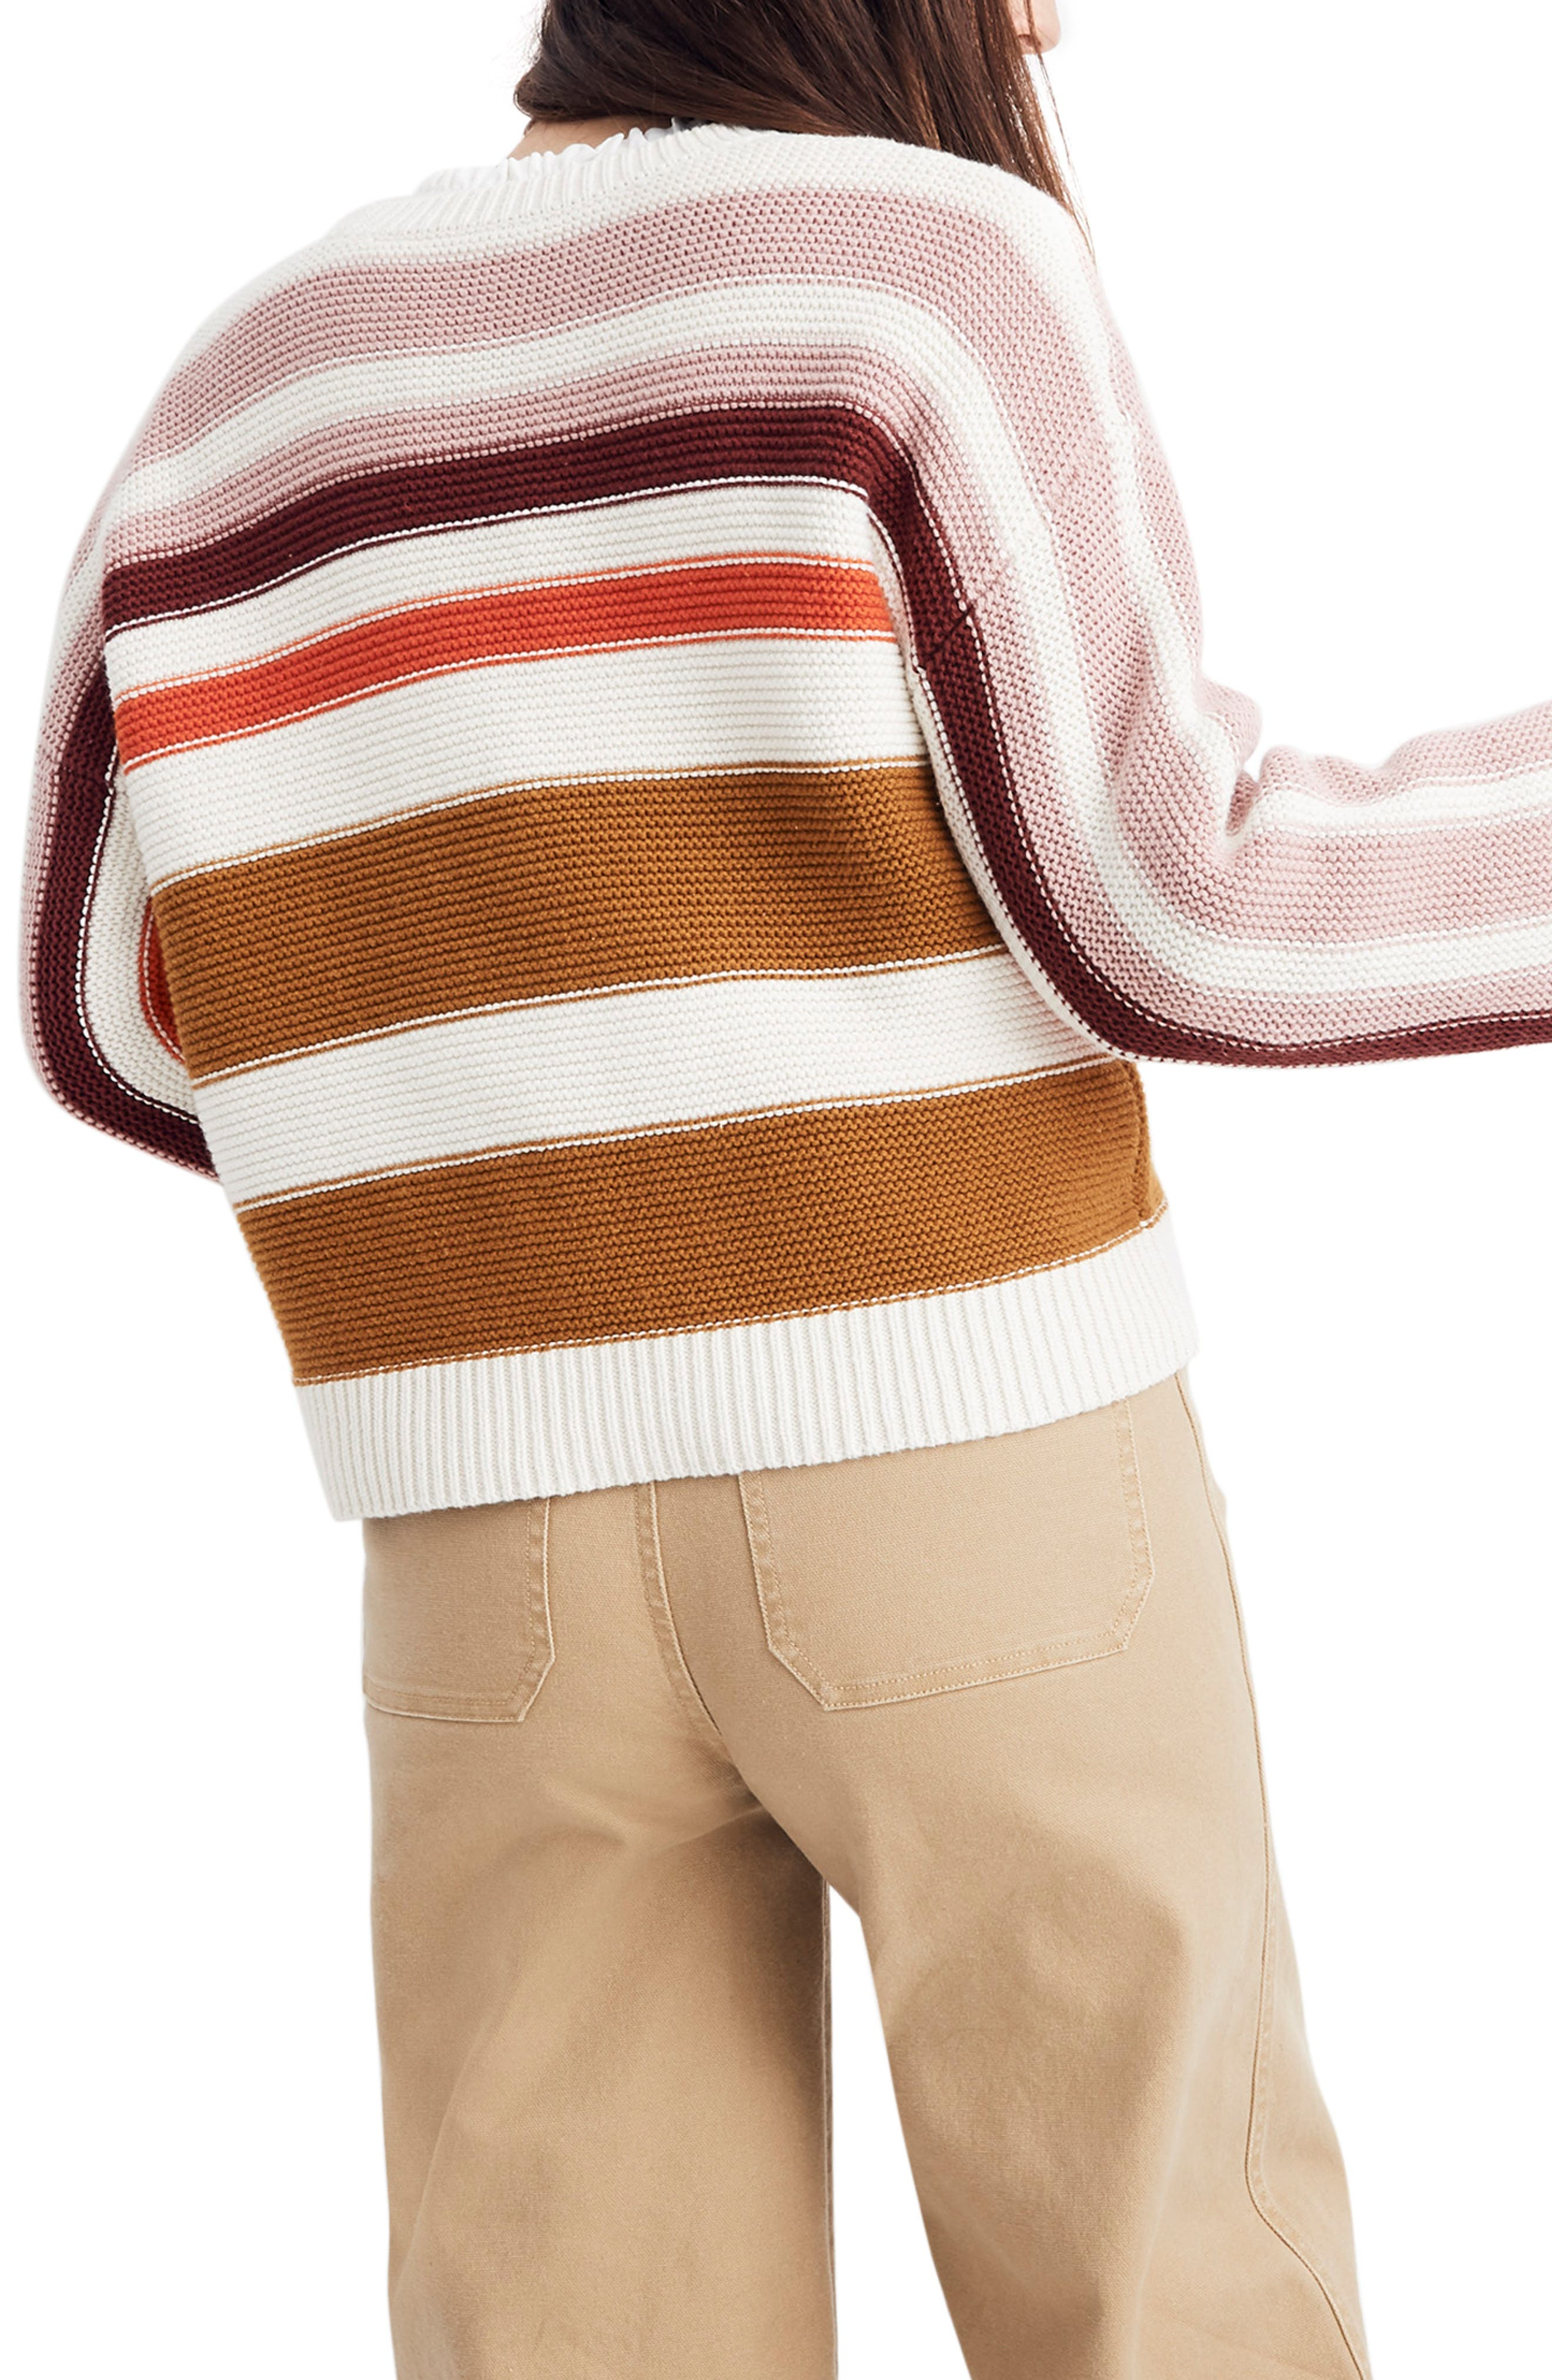 MADEWELL,                             Valleyscape Stripe Pullover Sweater,                             Alternate thumbnail 2, color,                             NATURAL